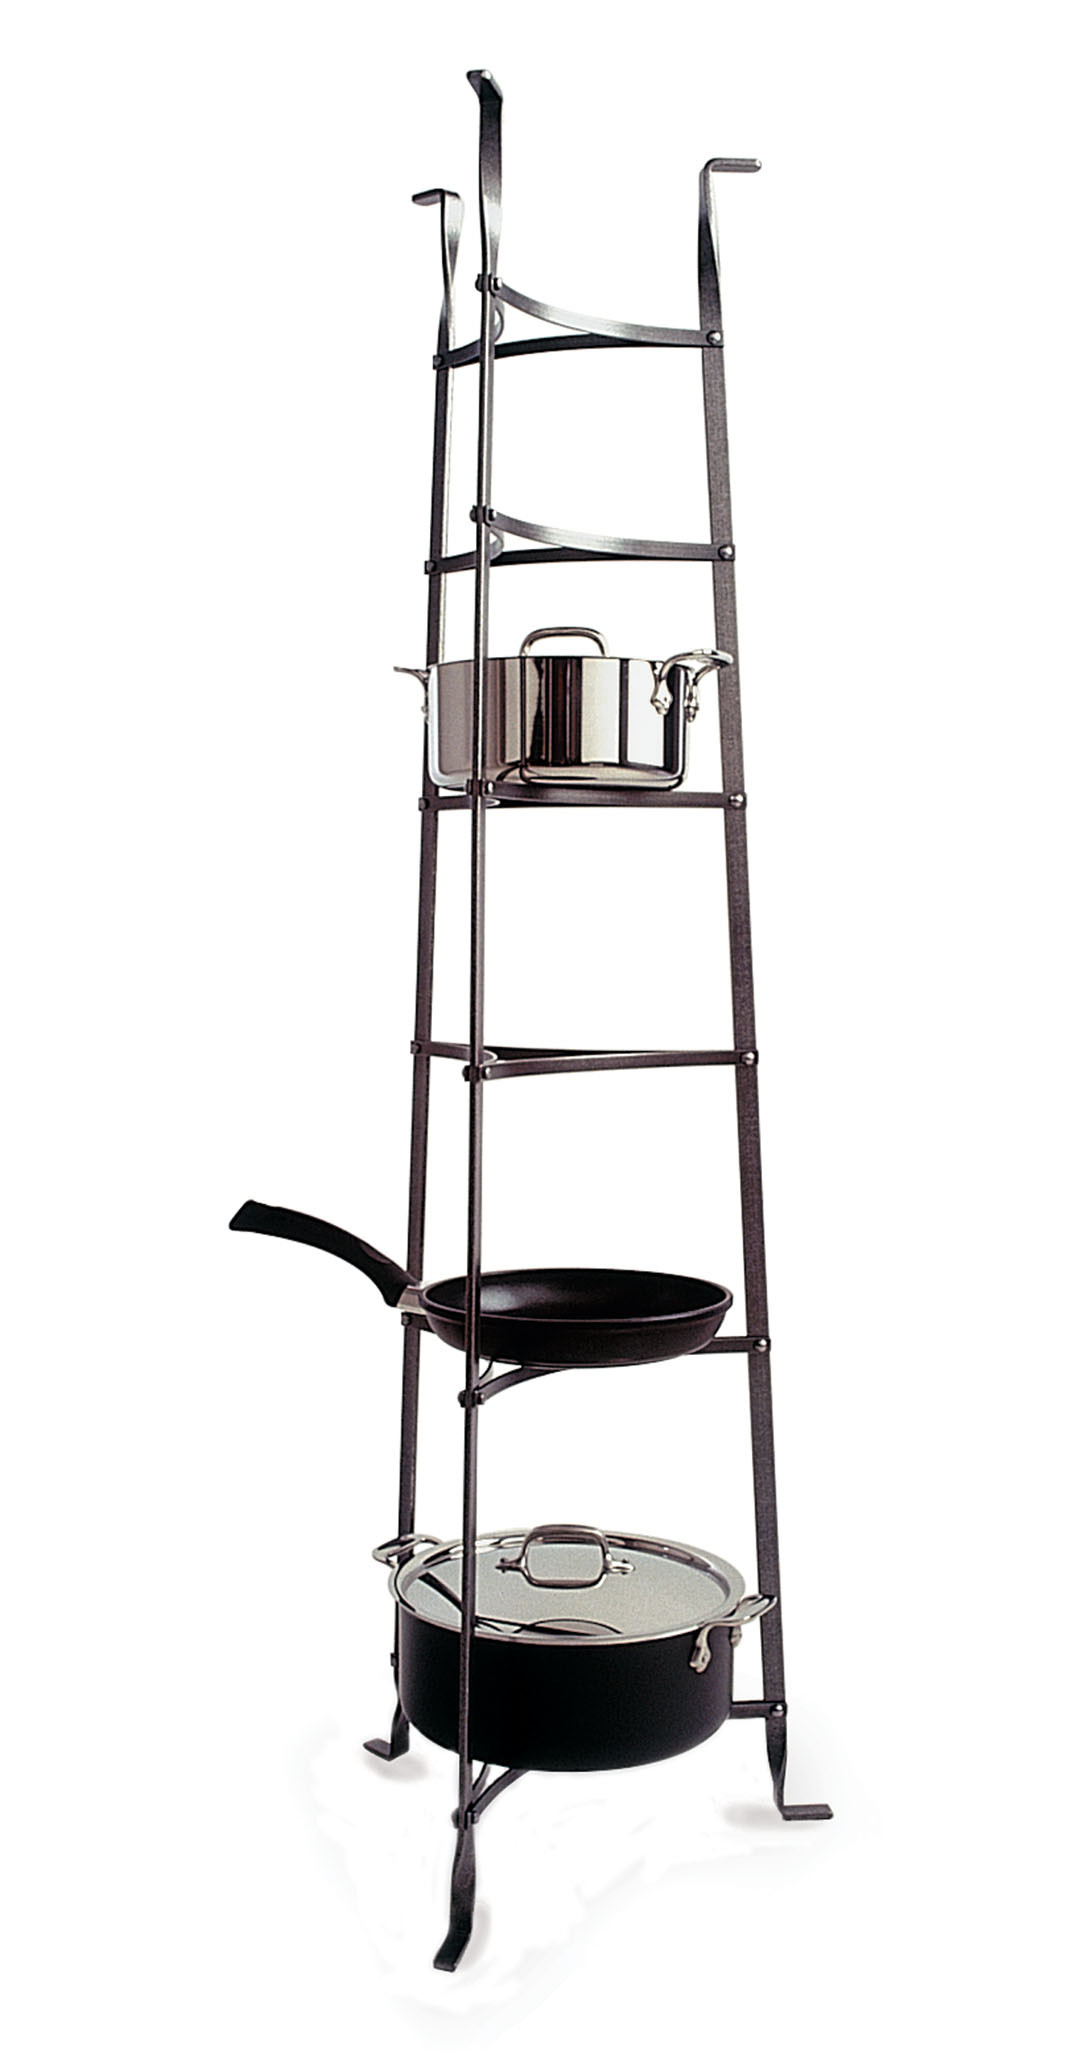 Enclume 6-Tier Cookware Stand in Hammered Steel